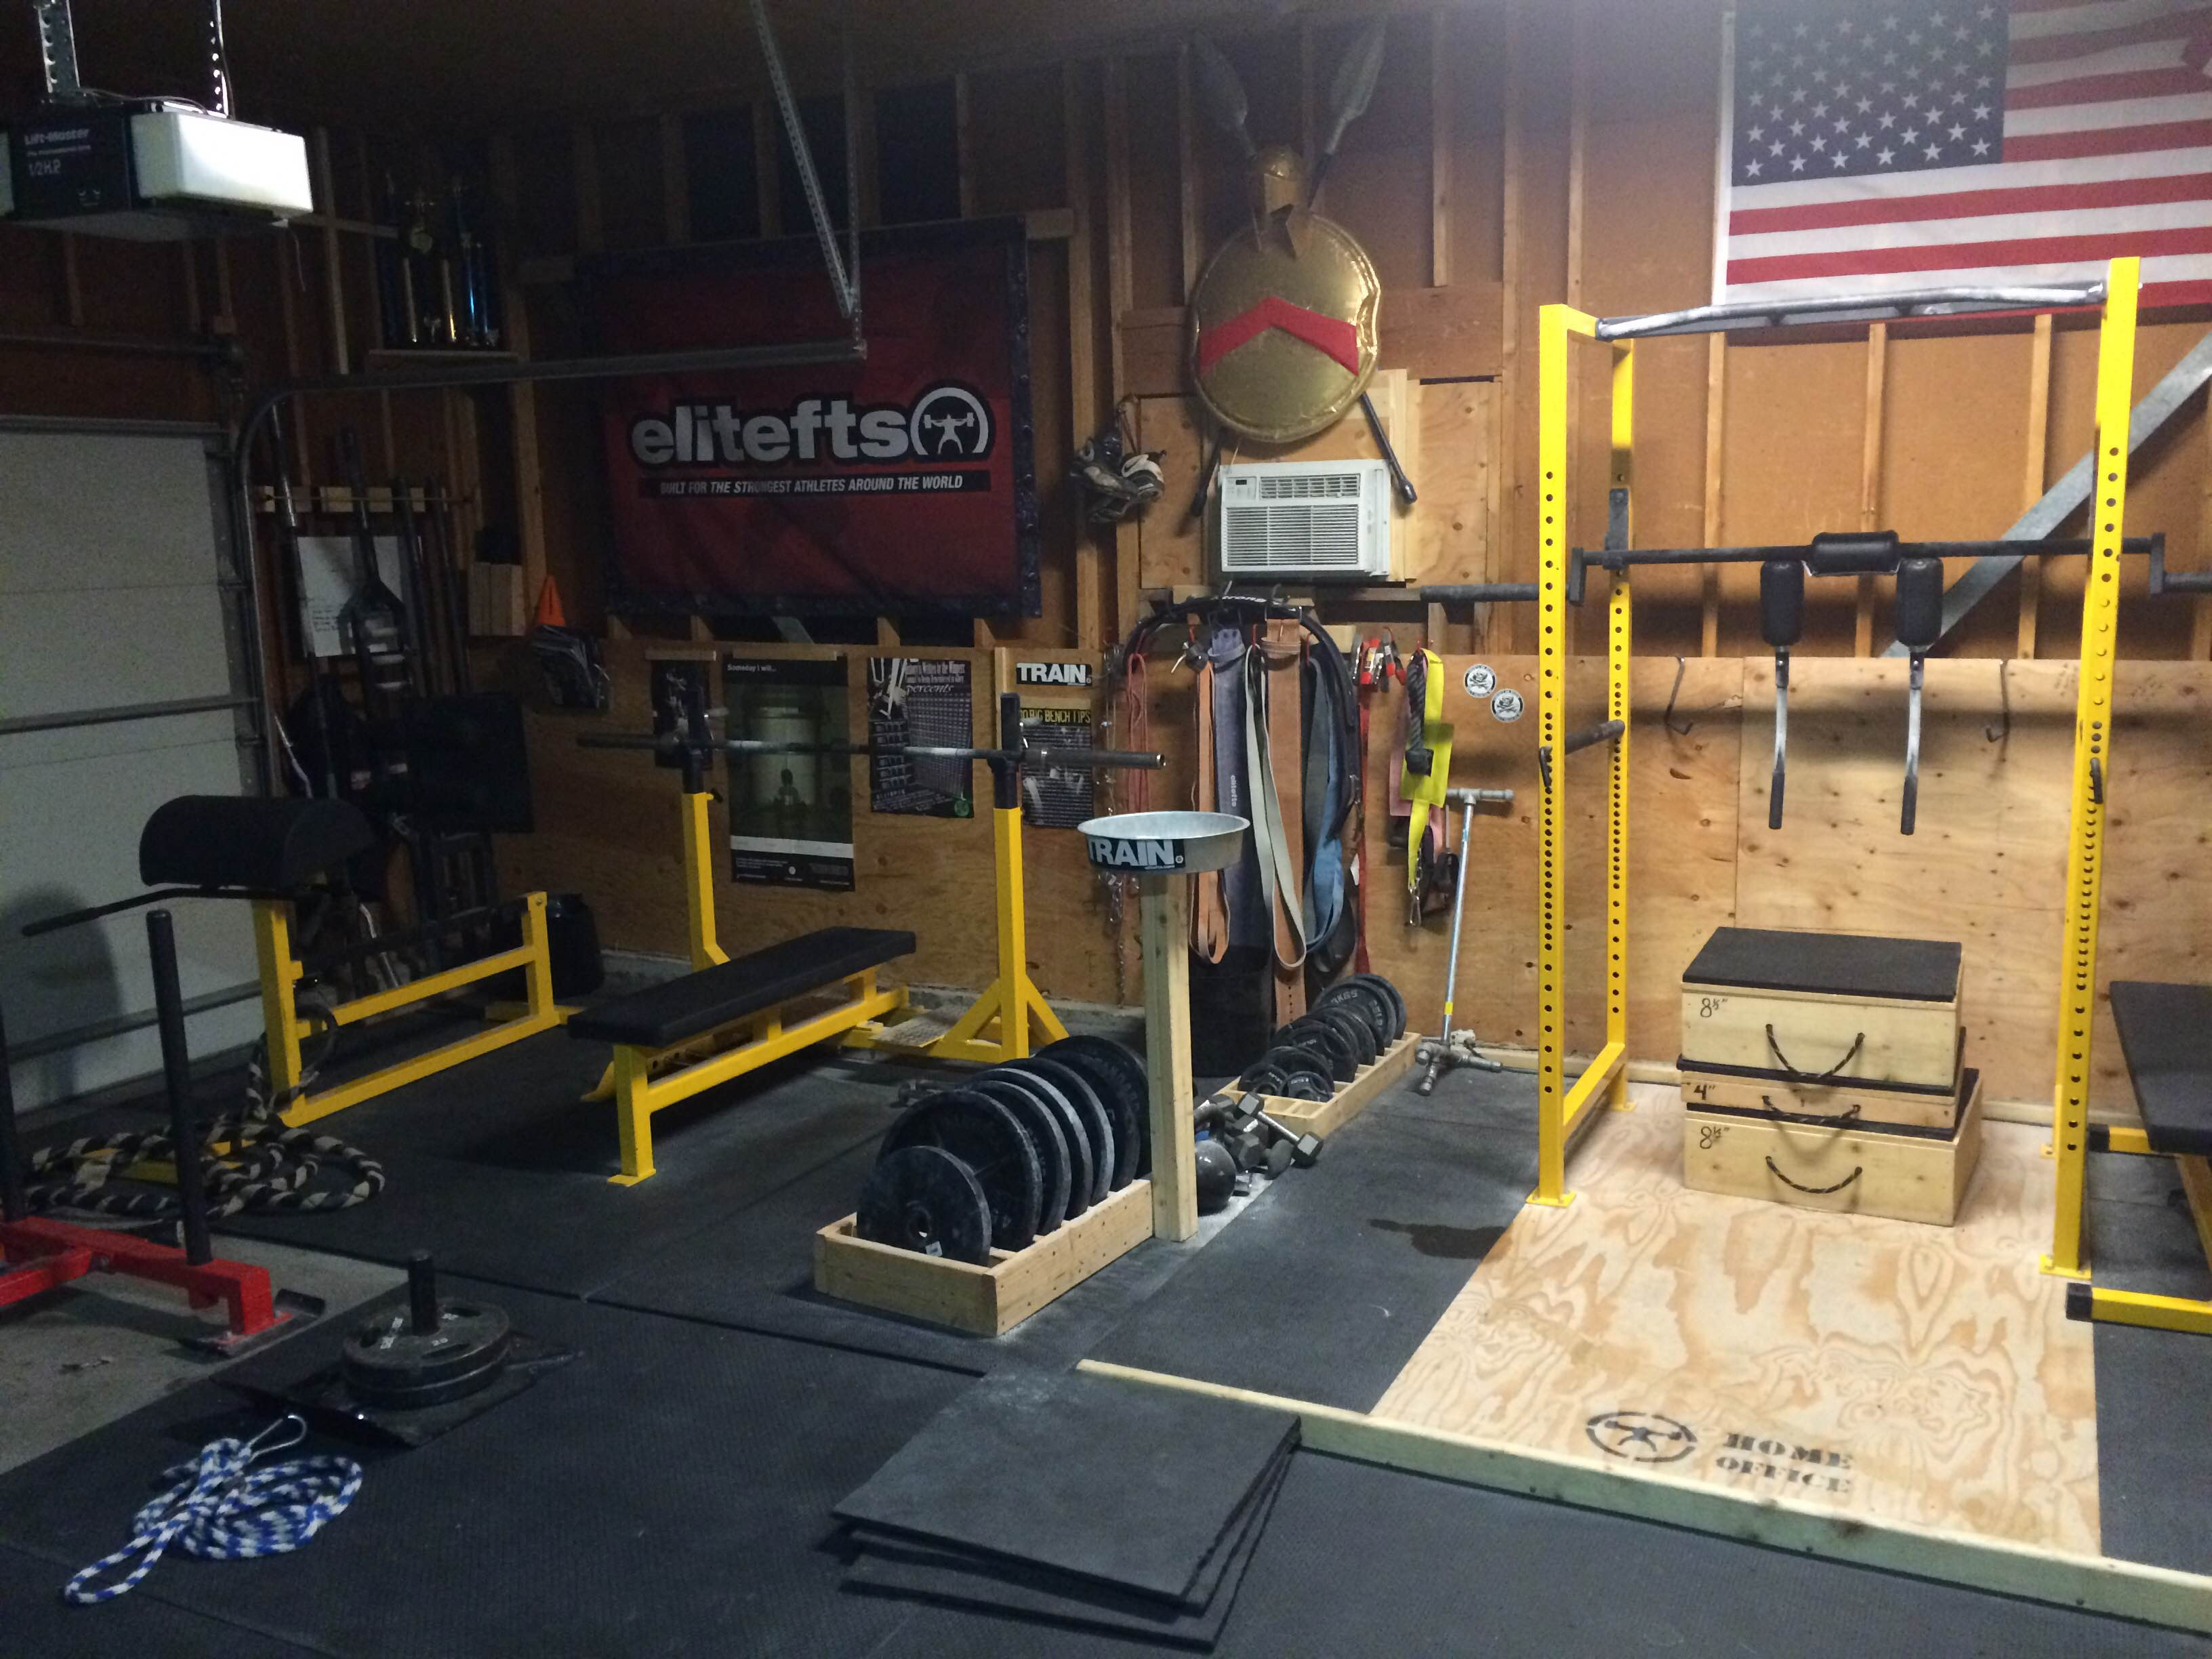 Garage Gym With Car Building The Executive Meathead S Home Office Elite Fts